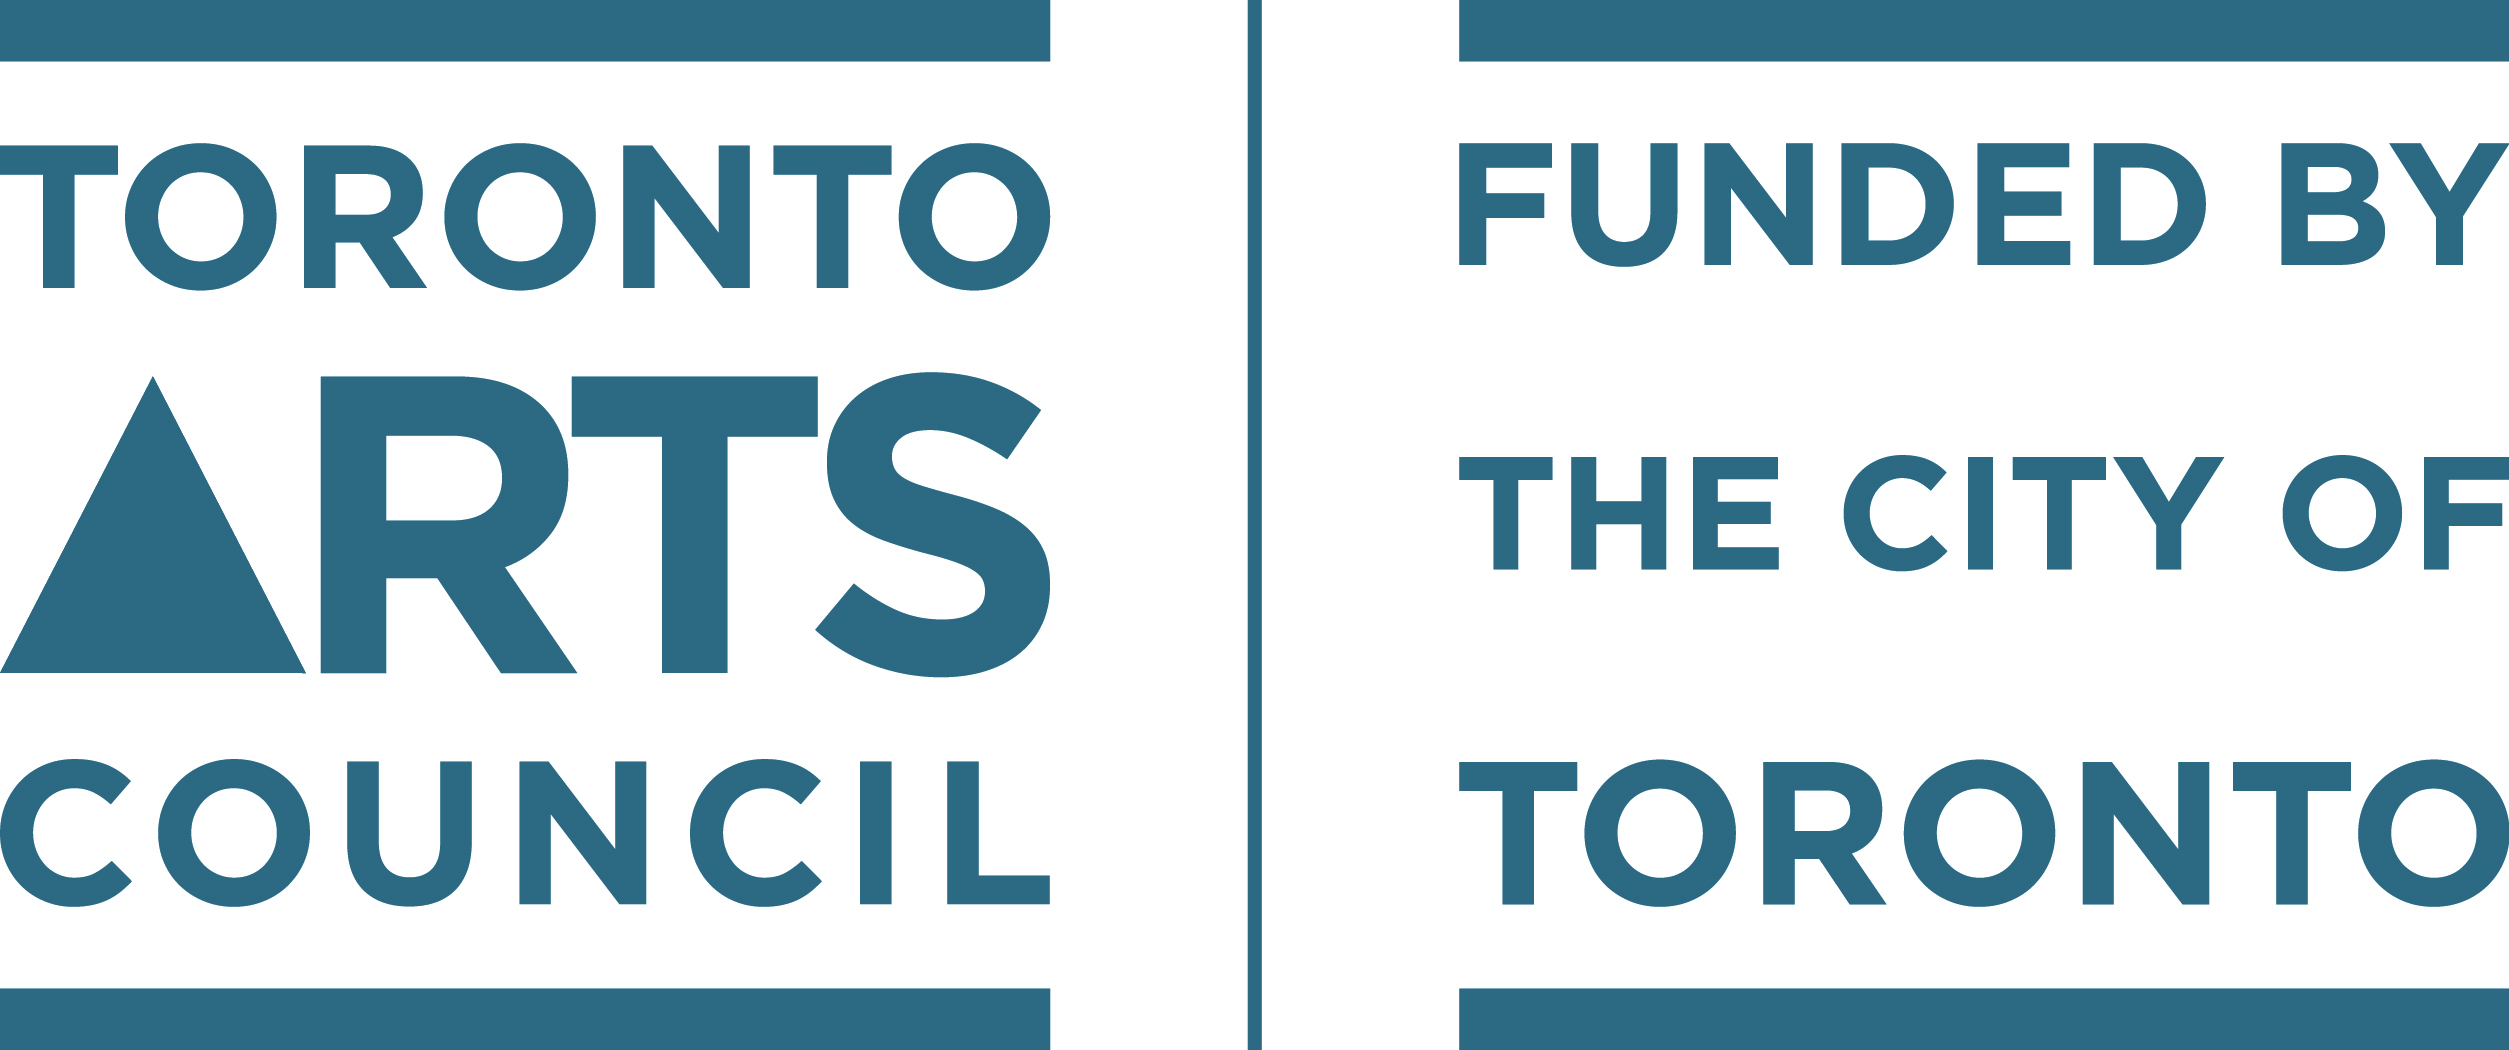 Toronto Arts Council (logo) Funded by the City of Toronto